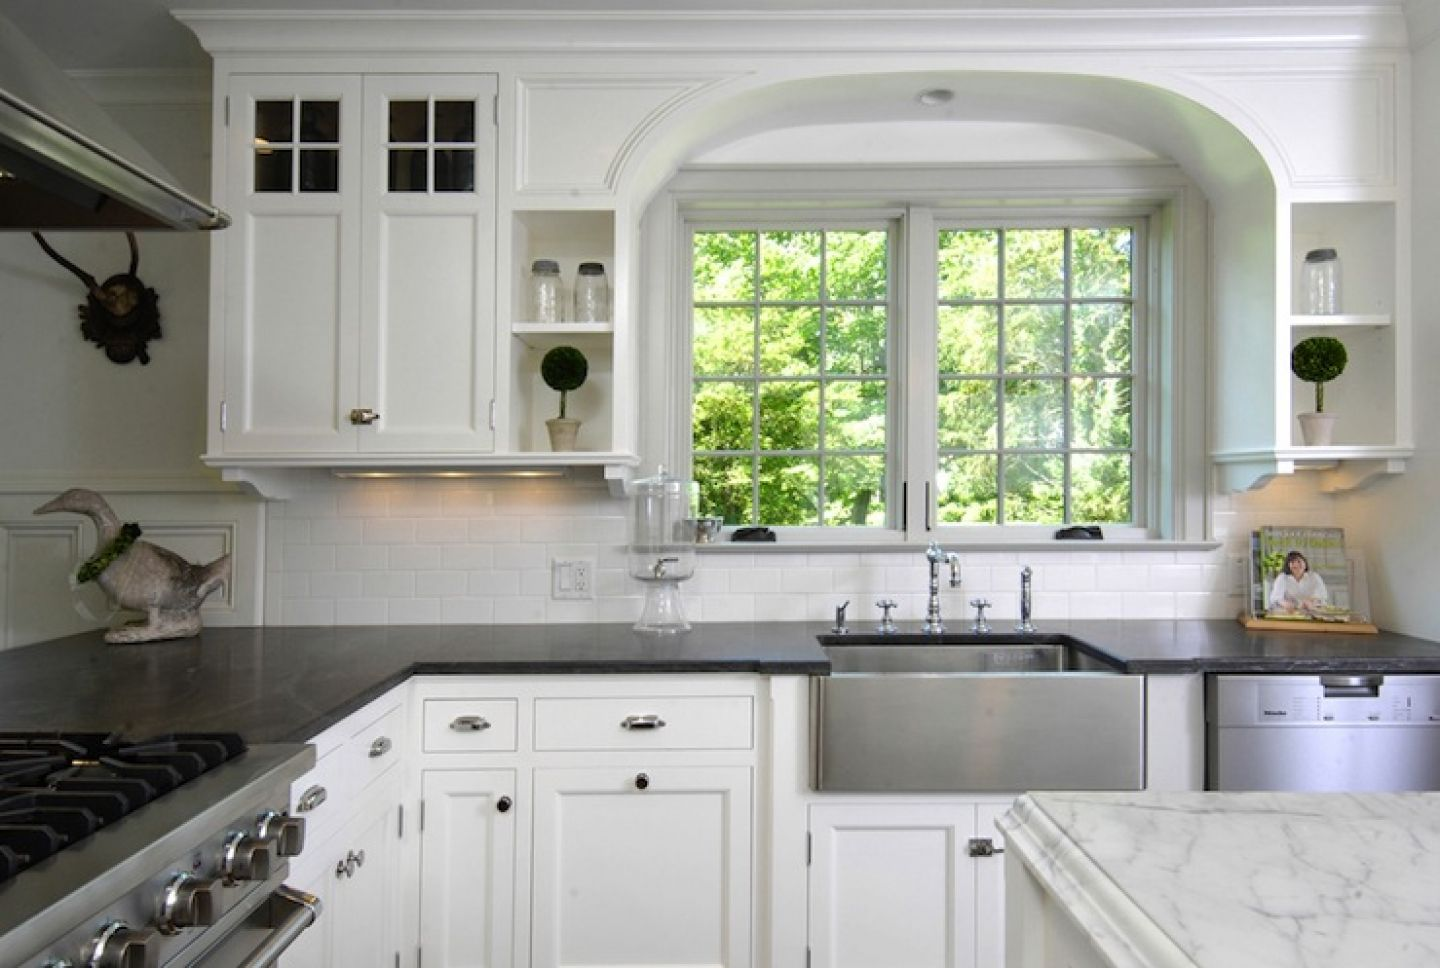 Small Kitchen White Kitchen Cabinets Design With Black Countertop And Glass Window With Id Classic Kitchen Cabinets White Kitchen Design White Modern Kitchen